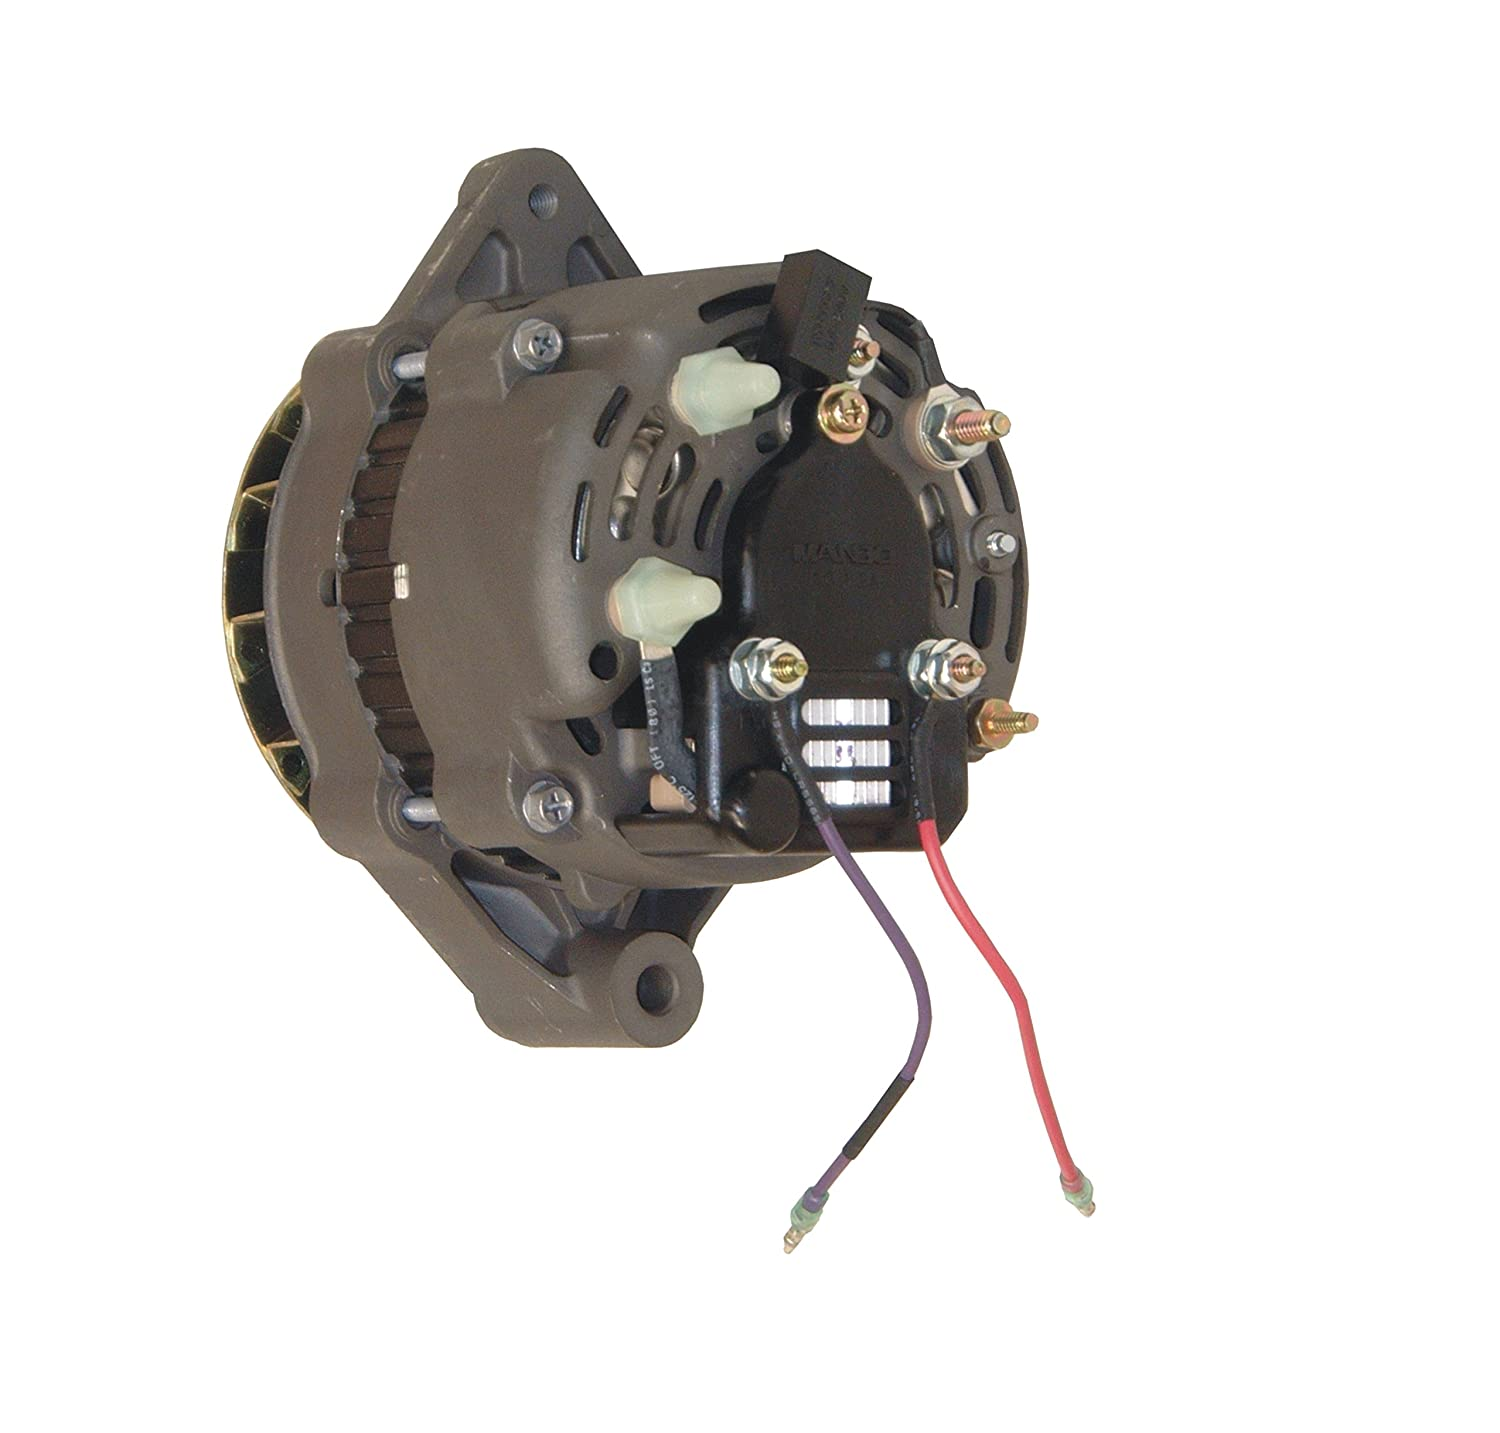 New Premium SAEJ1171 Certified Alternator 12V 55 Amp for Mercruiser on